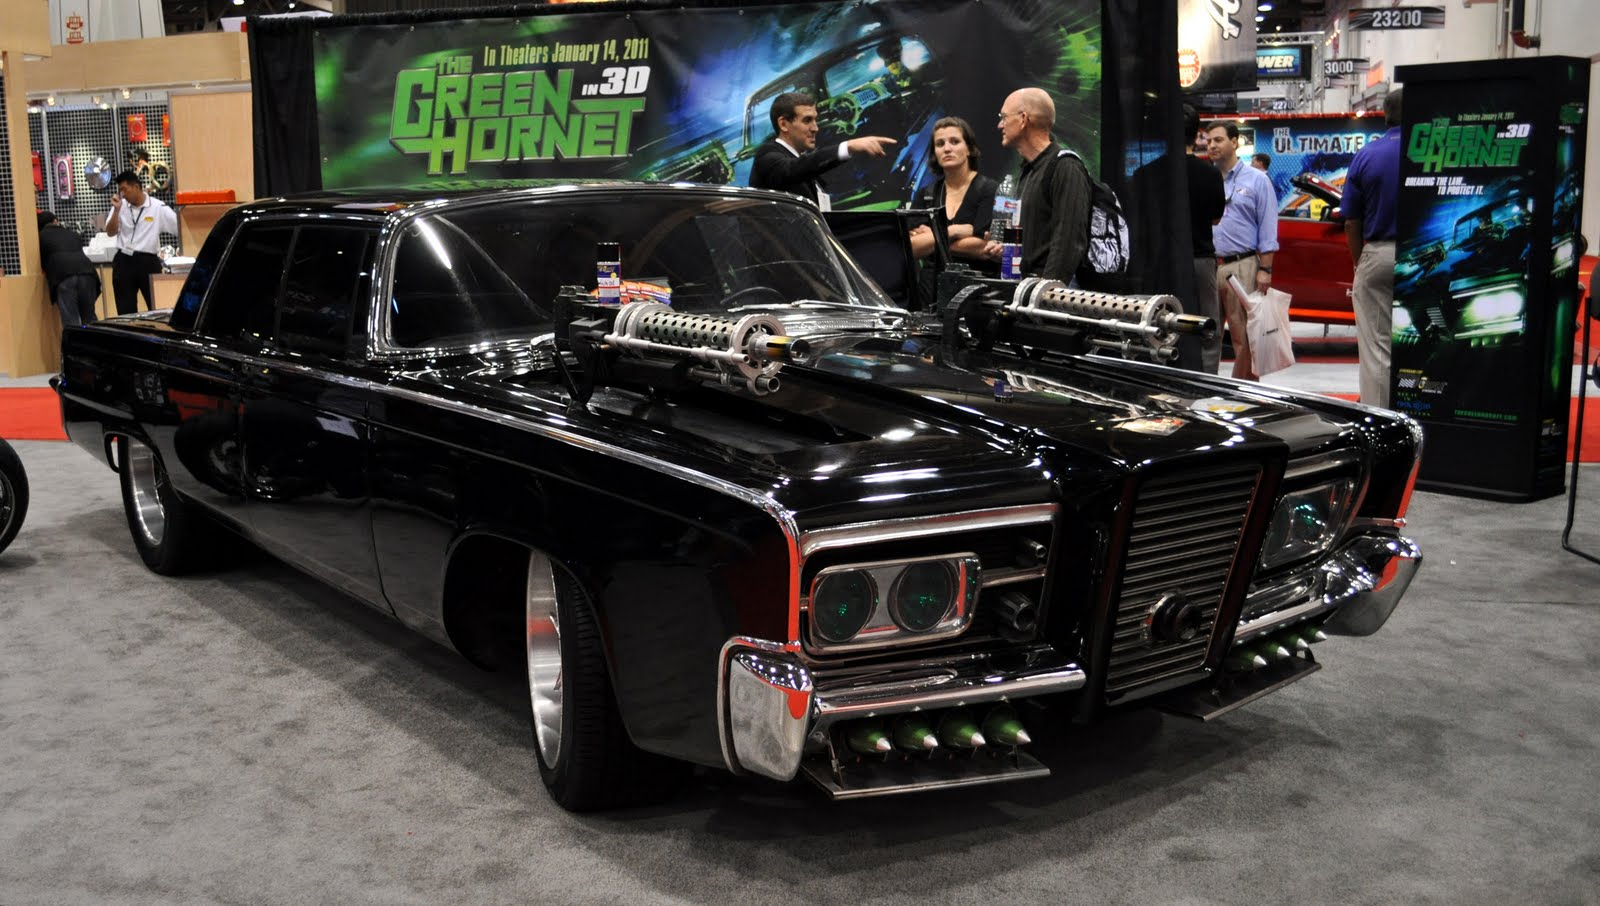 Just A Car Guy: Black Beauty from the new Green Hornet movie. what it looks like on the inside too